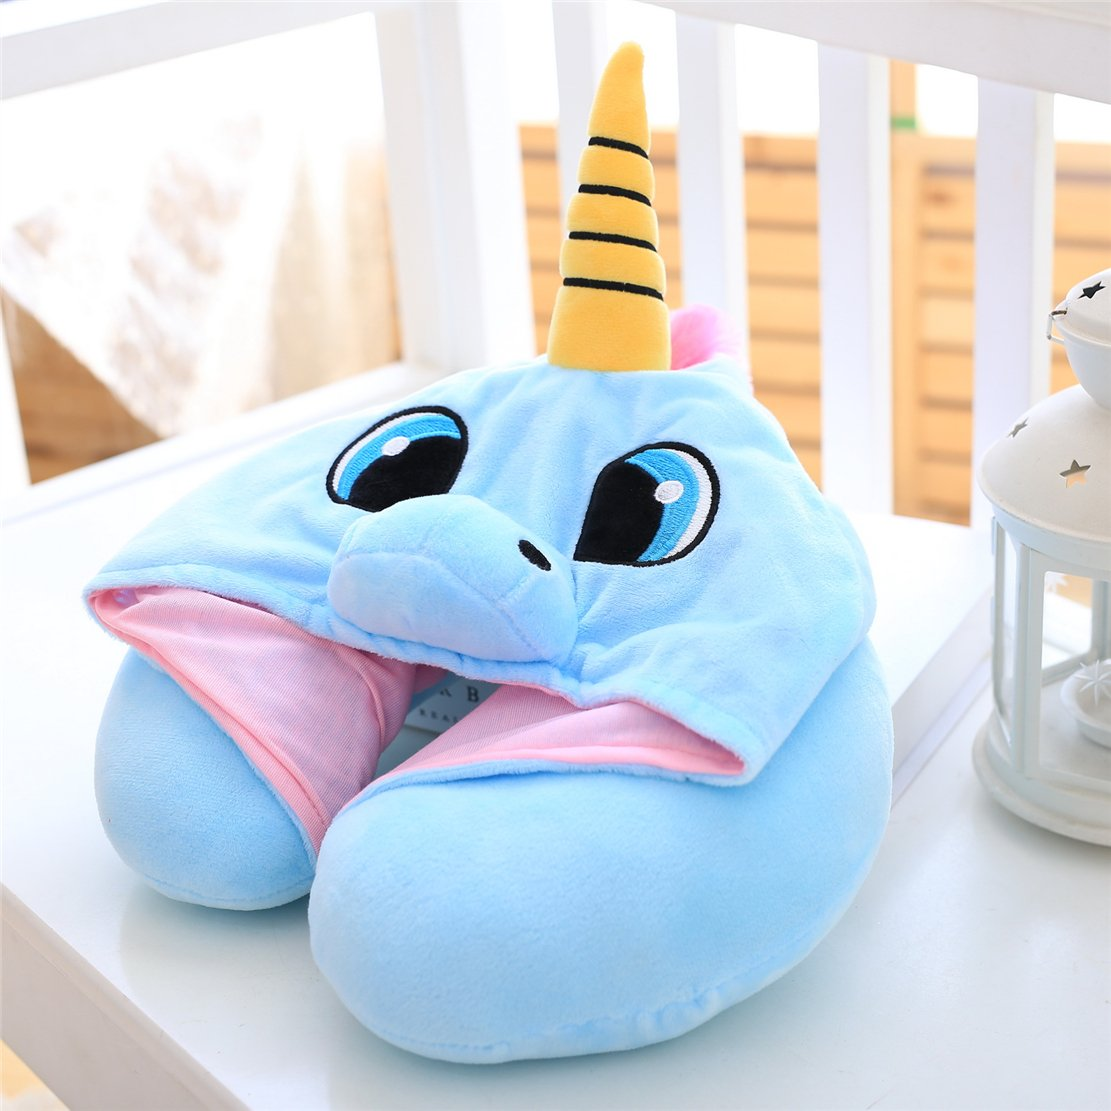 Travel Neck Pillow – Cute Blue Unicorn